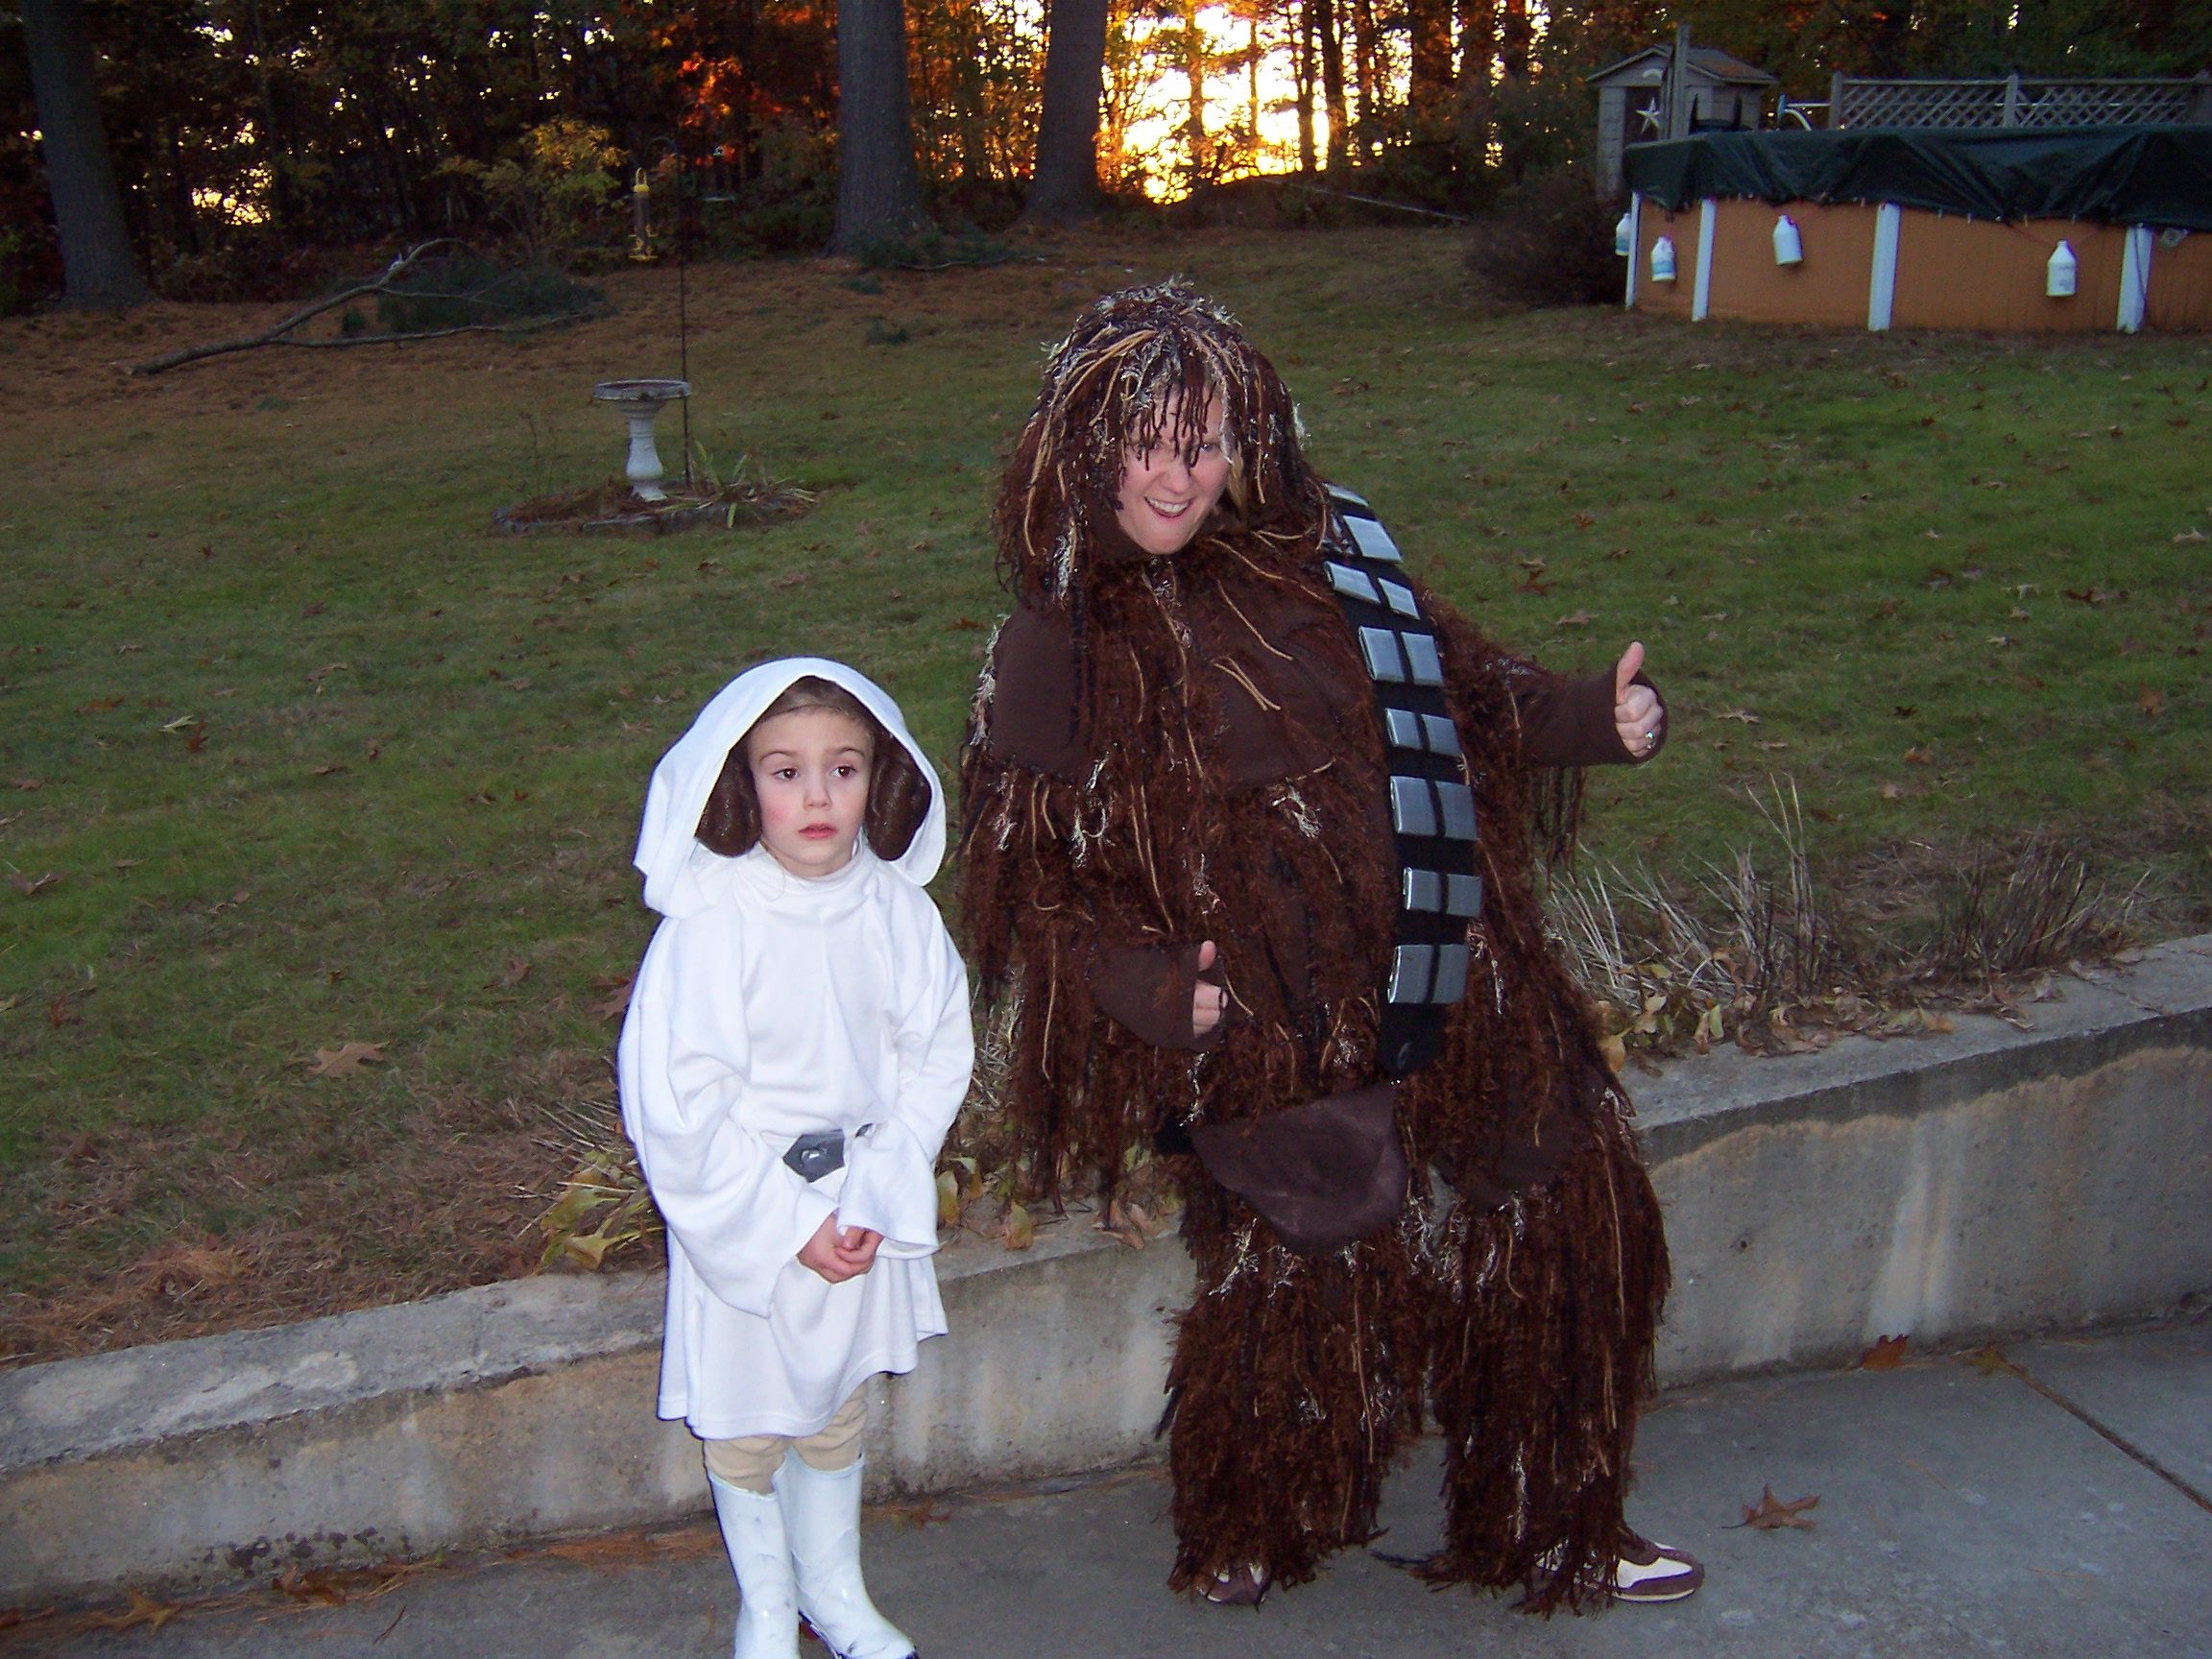 my mom the dirty chewbacca | costumed humans | Pinterest ...